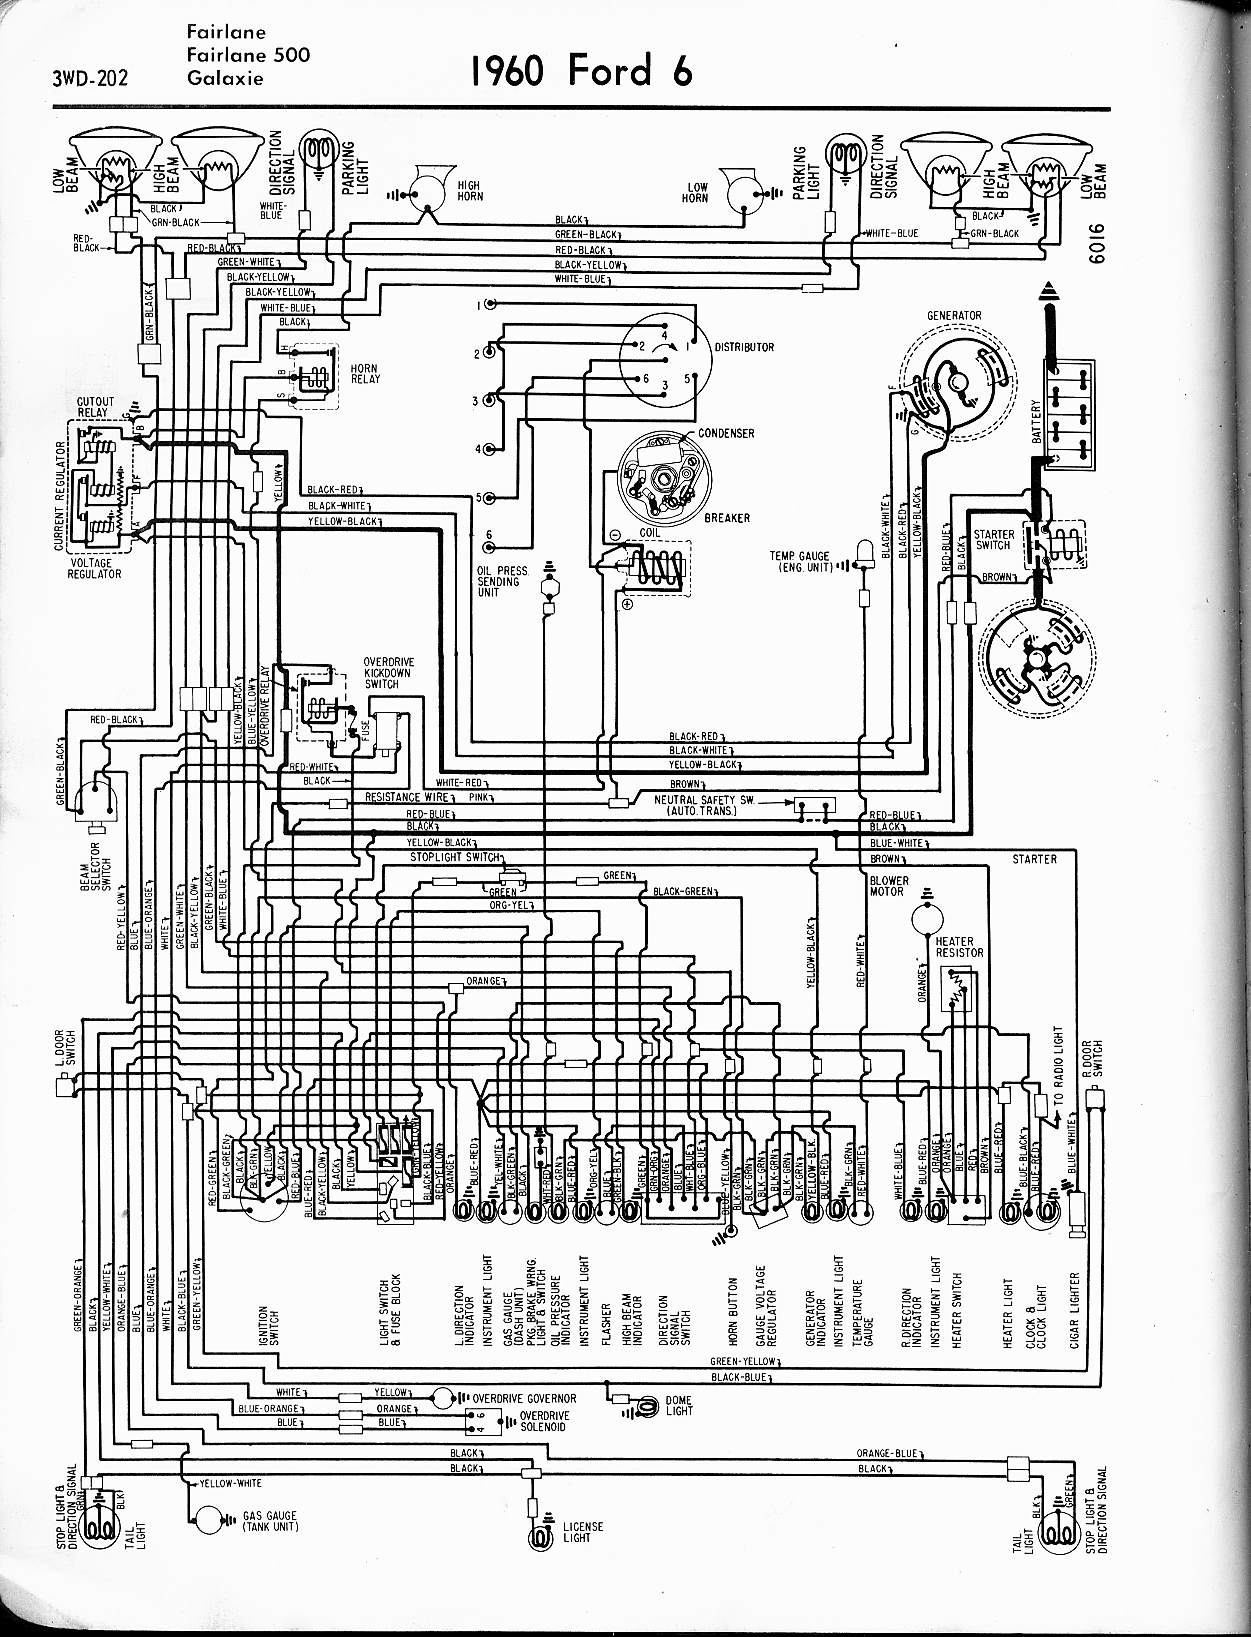 MWire5765 202 57 65 ford wiring diagrams ford electrical wiring diagrams at eliteediting.co